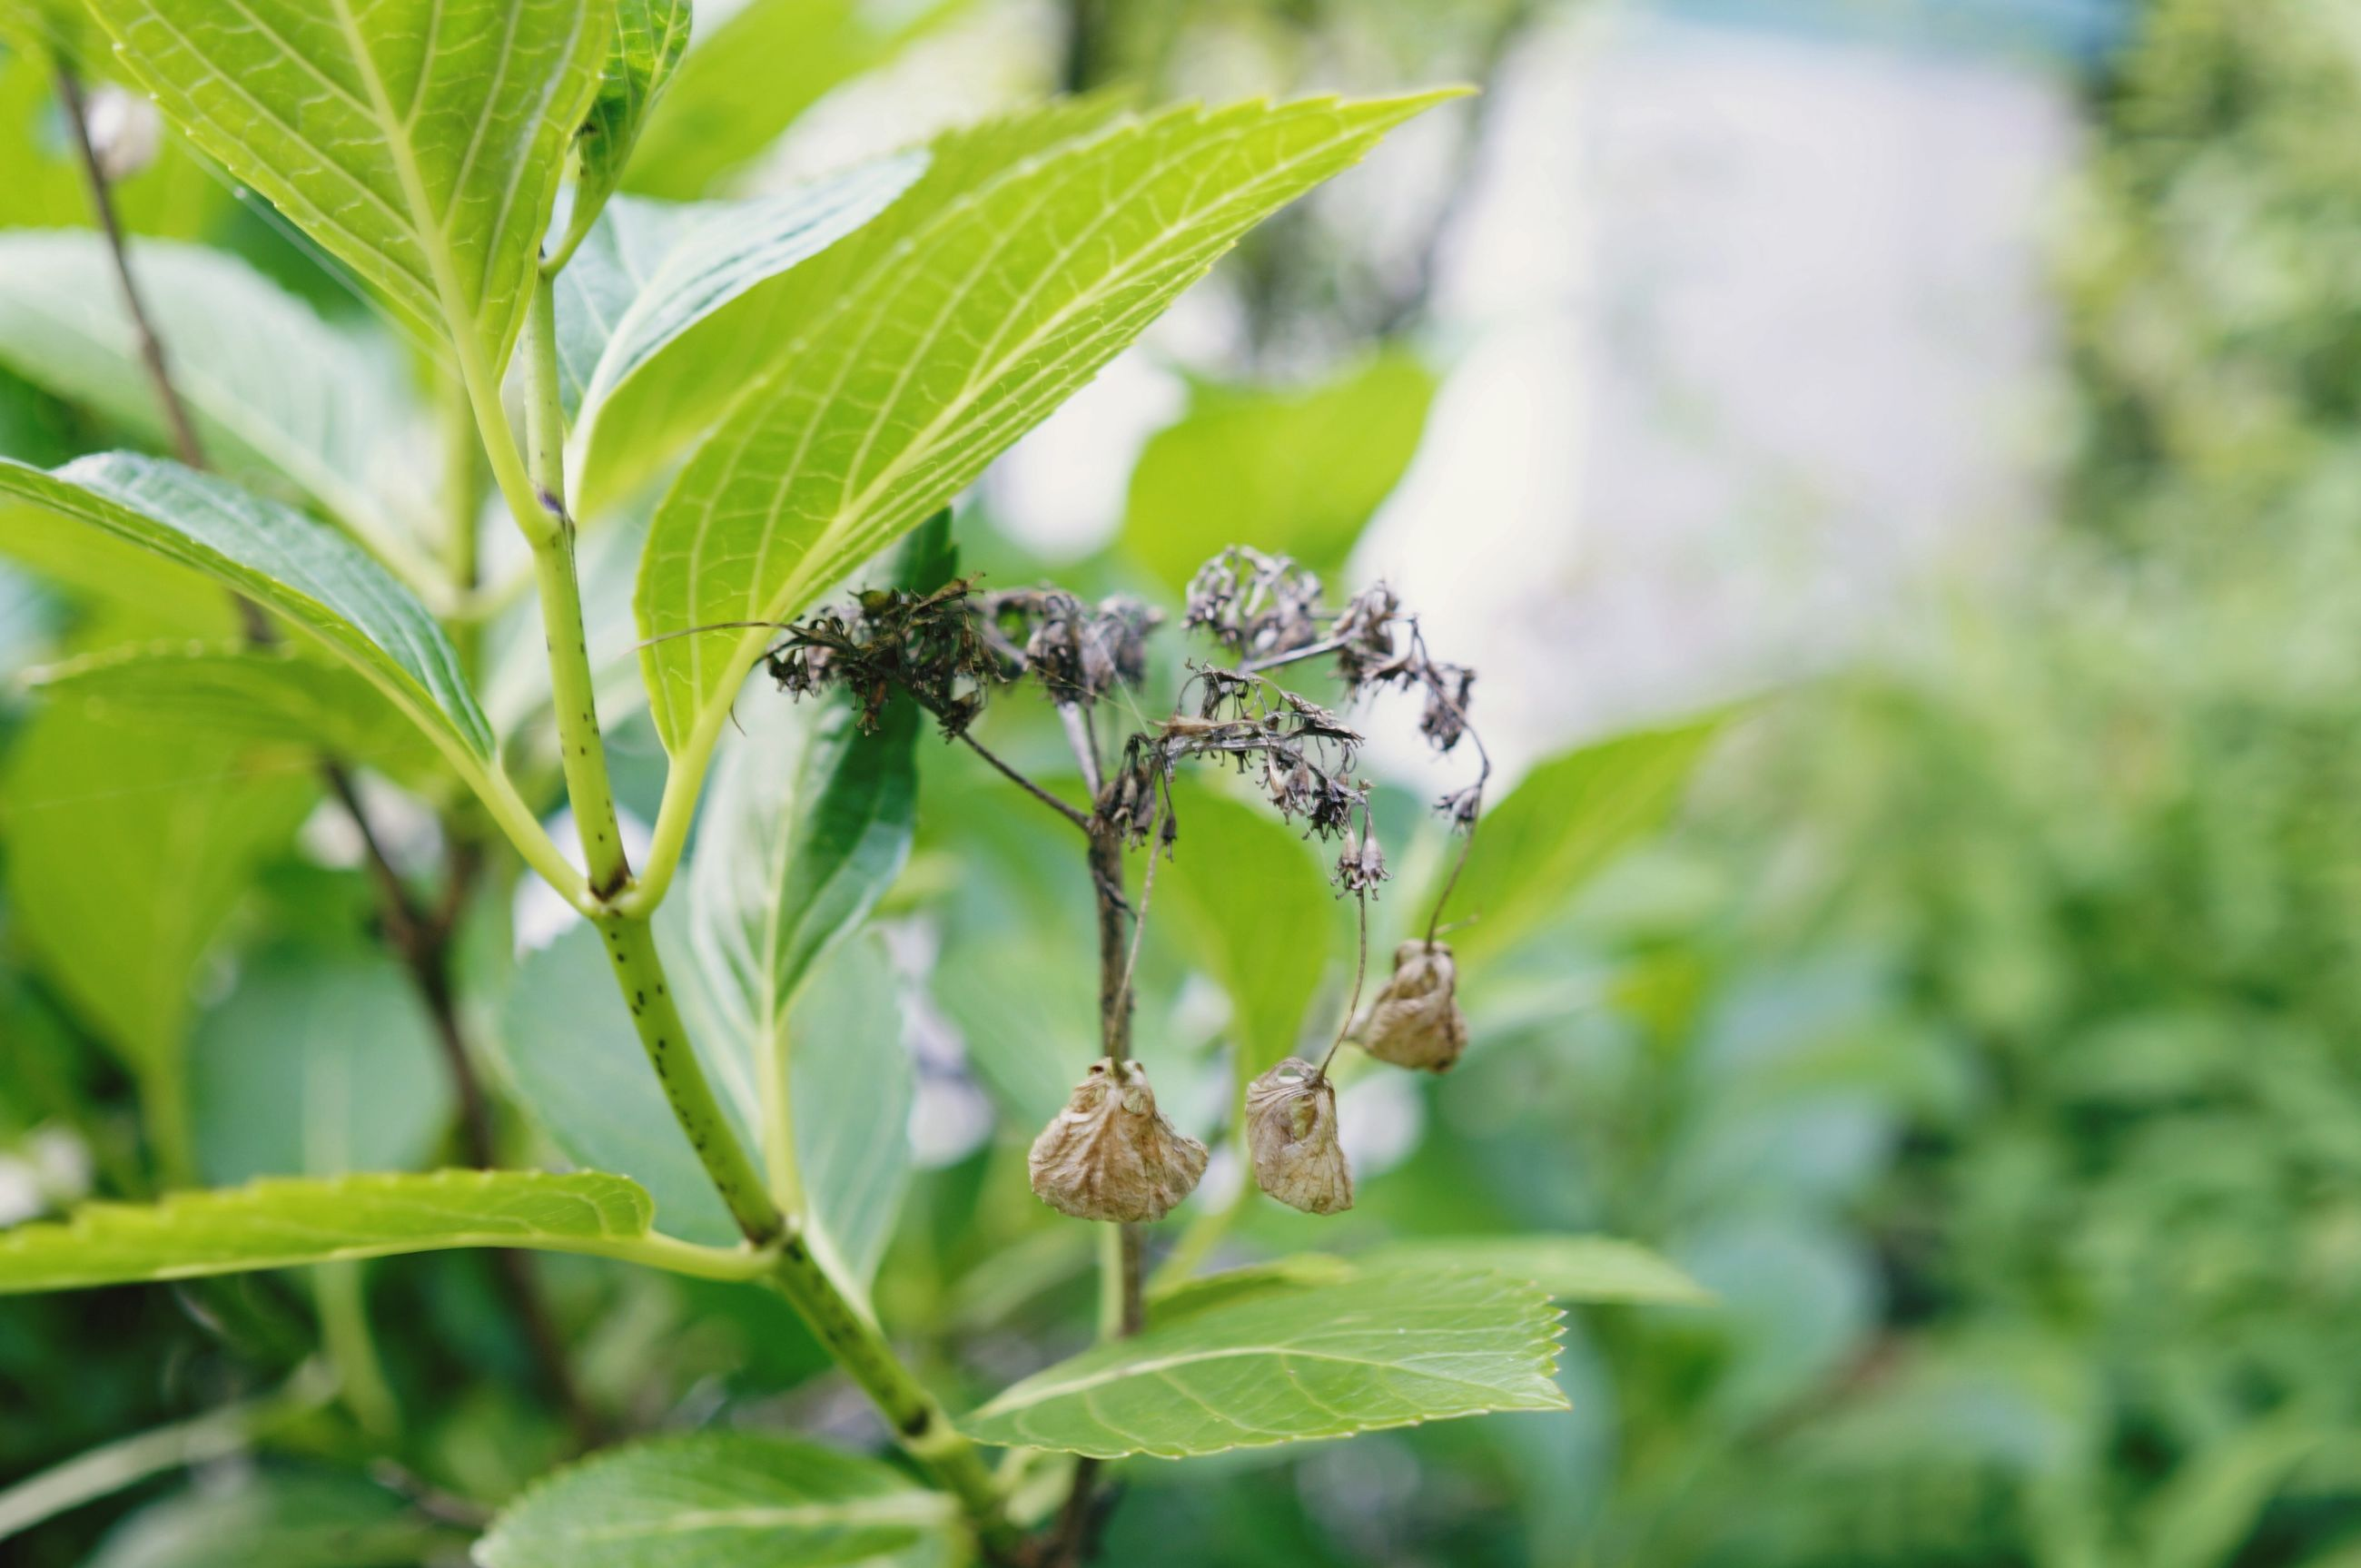 insect, leaf, animal themes, plant, one animal, green color, growth, animals in the wild, close-up, focus on foreground, wildlife, nature, selective focus, day, outdoors, no people, beauty in nature, stem, freshness, green